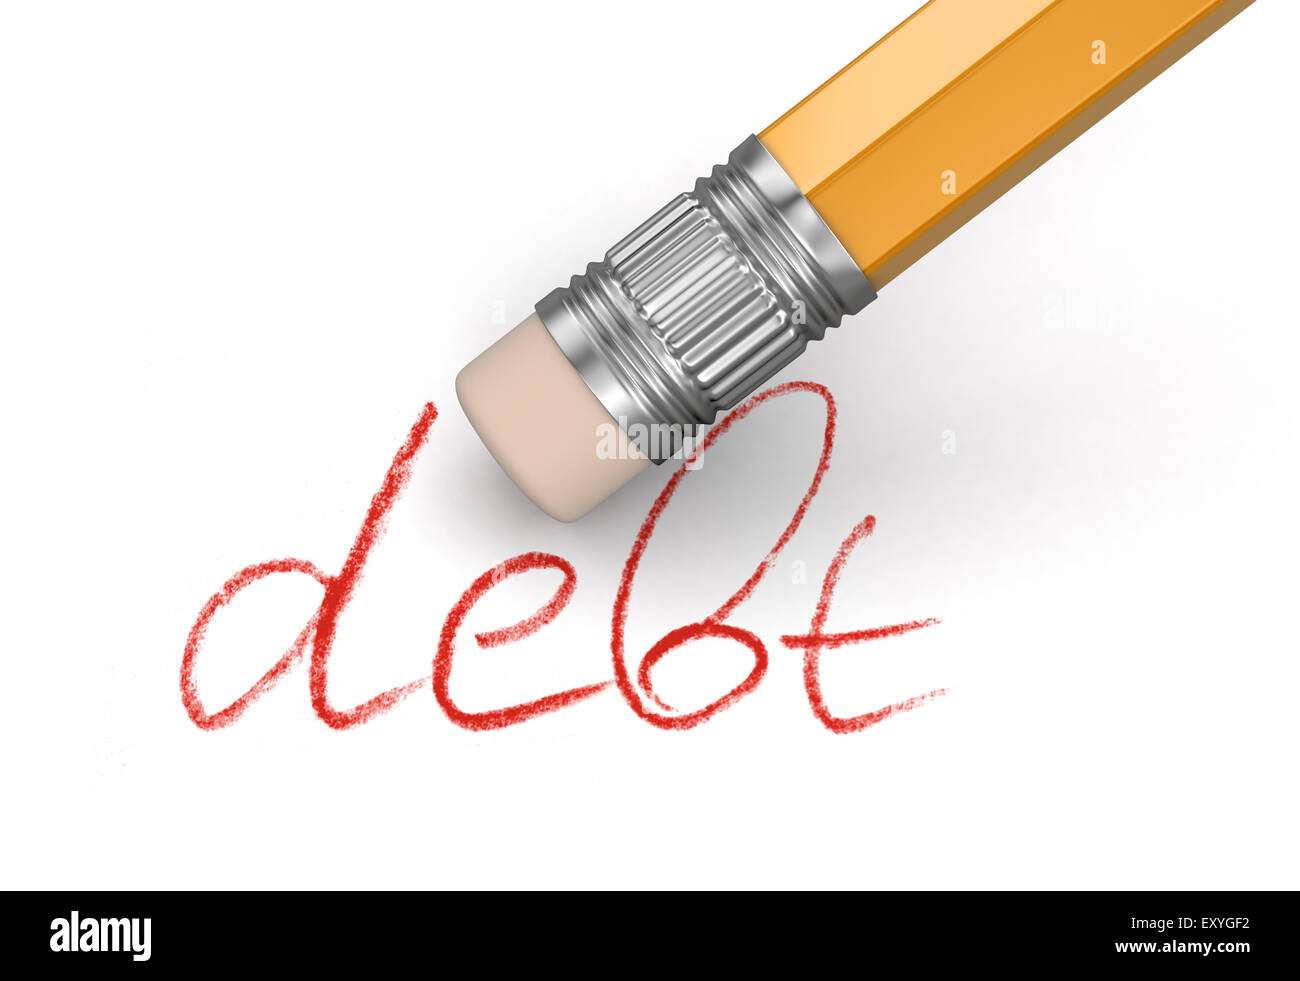 Erase Debt (clipping path included) - Stock Image